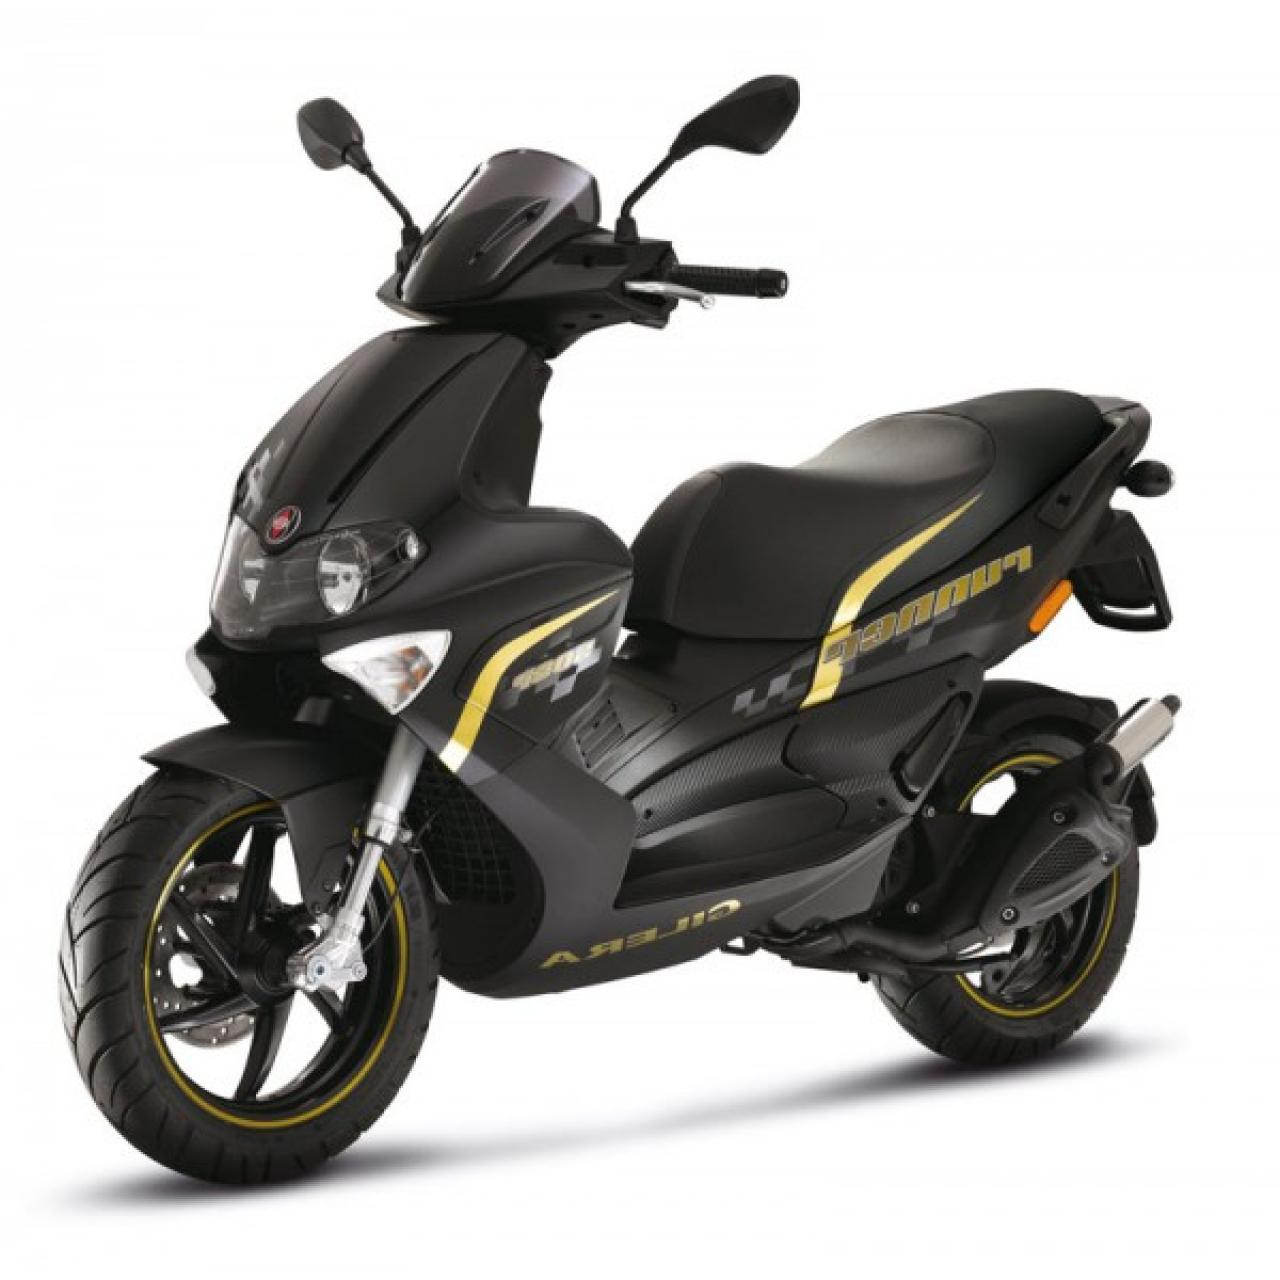 Gilera Runner 50 Black Soul 2015 images #76482